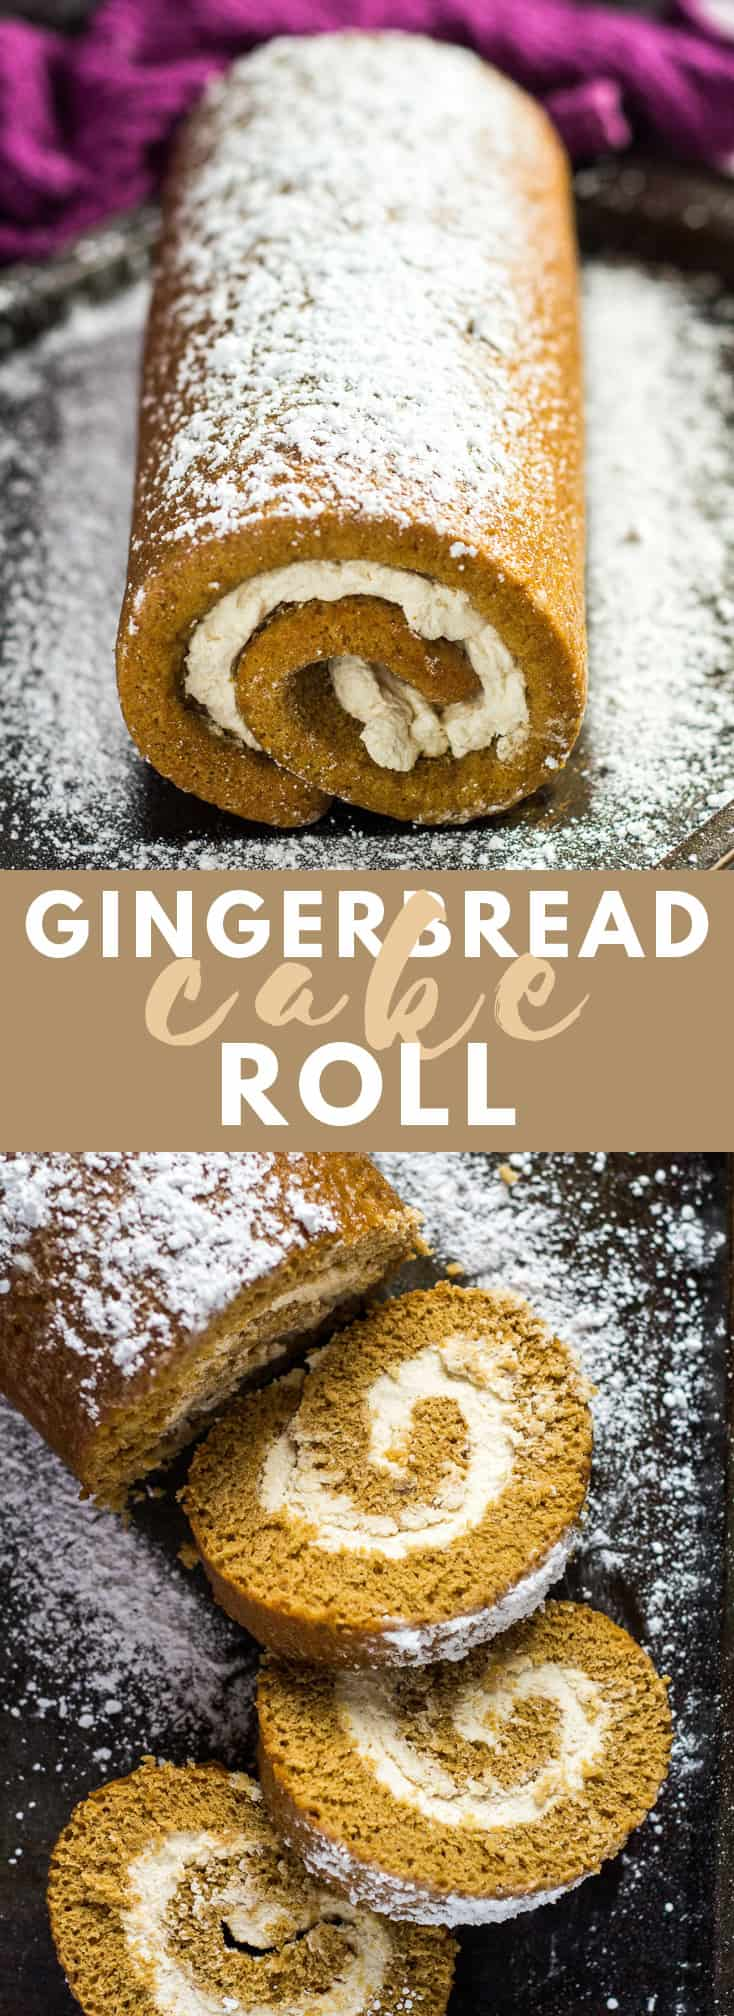 Gingerbread Cake Roll- Deliciously moist and fluffy gingerbread cake roll that is loaded with warm, cozy flavours, and filled with spiced whipped cream! #gingerbread #cakeroll #swissroll #cakerecipes #christmasrecipes